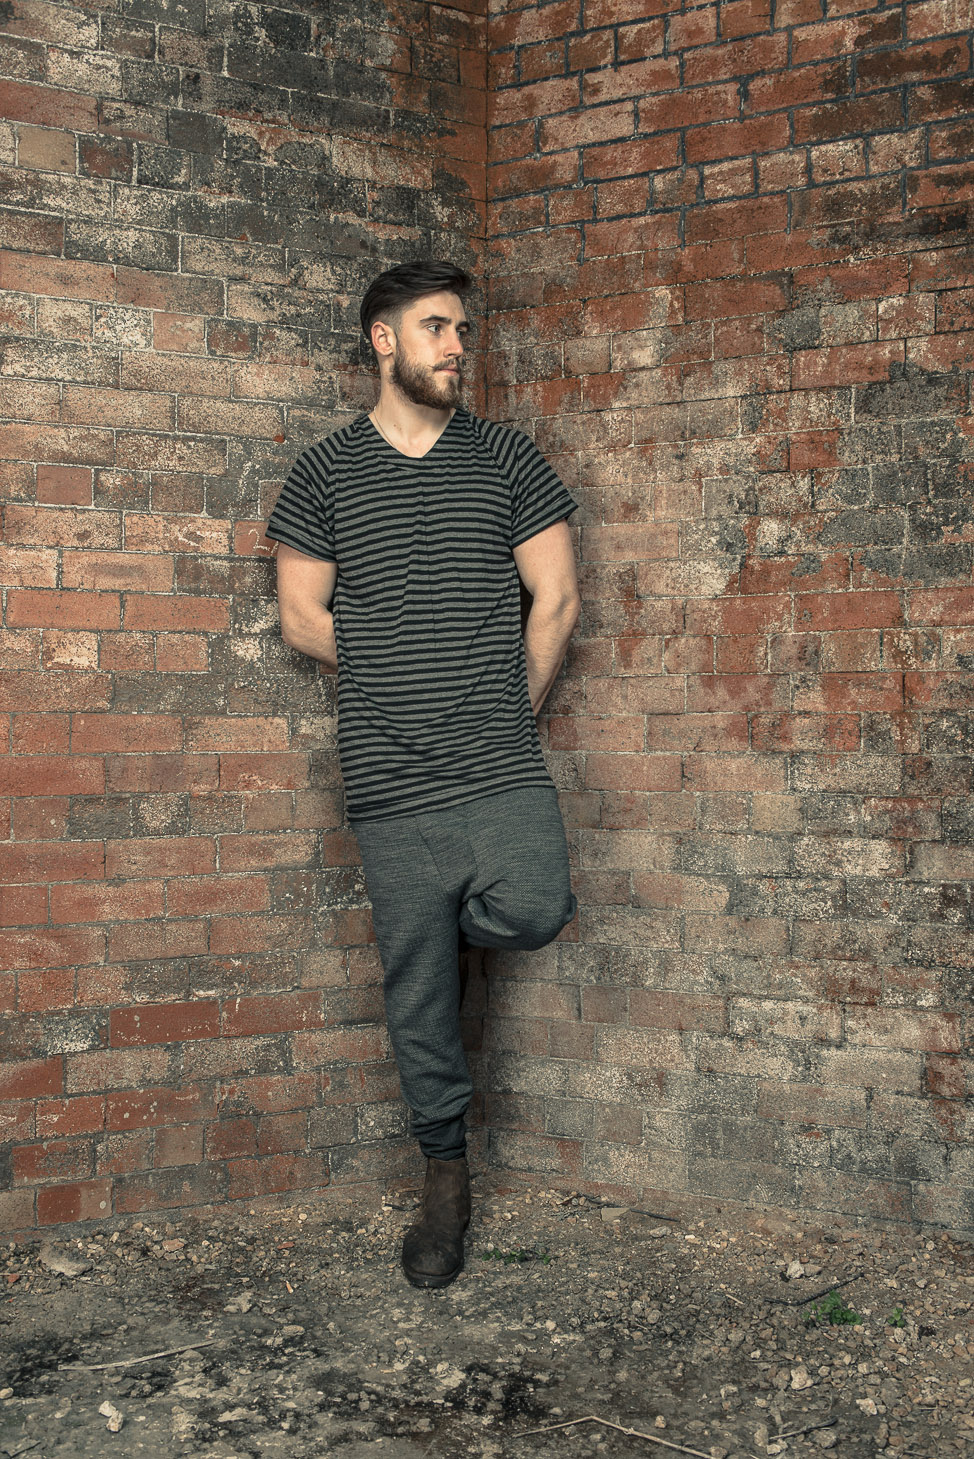 zaramia-ava-zaramiaava-leeds-fashion-designer-ethical-sustainable-tailored-minimalist-stripe-oversized-taichi-raglan-versatile-drape-grey-tshirt-top-vest-hareem-trousers-black-grey-texture-styling-5